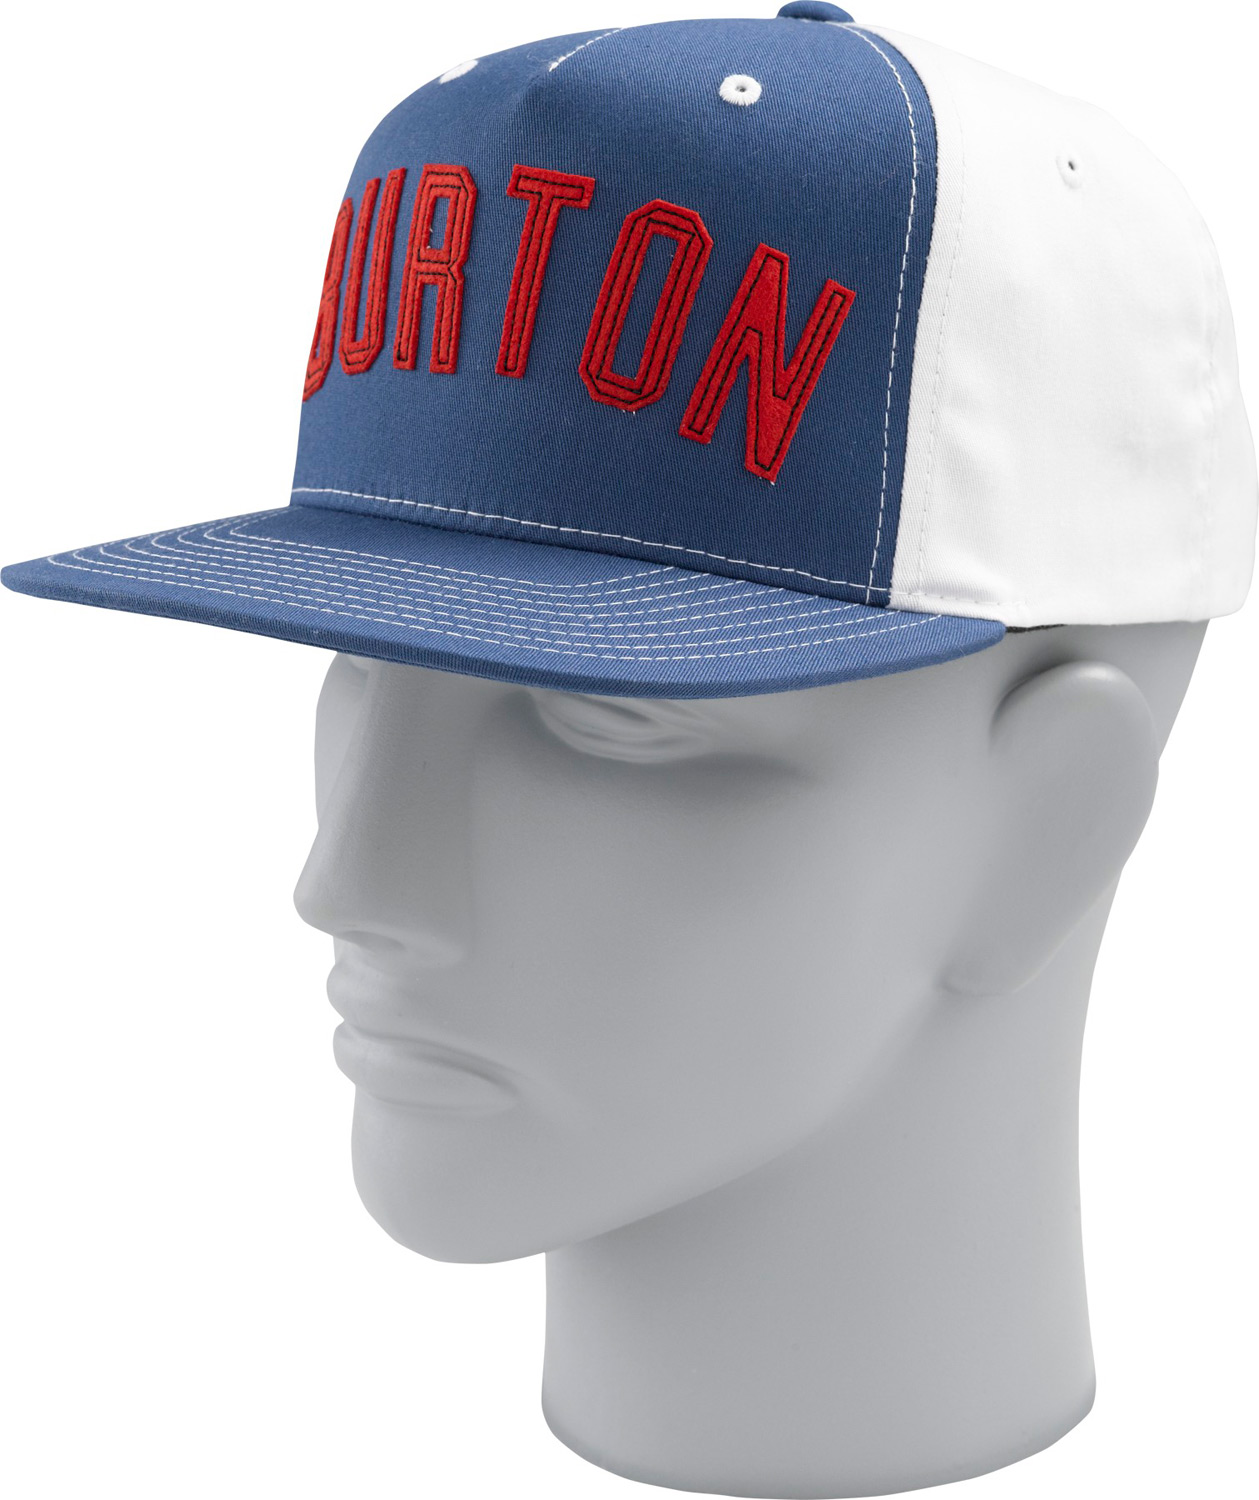 Snowboard Key Features of the Burton Canal Starter Cap: 98% Cotton/2% Spandex Flat Visor - $16.95